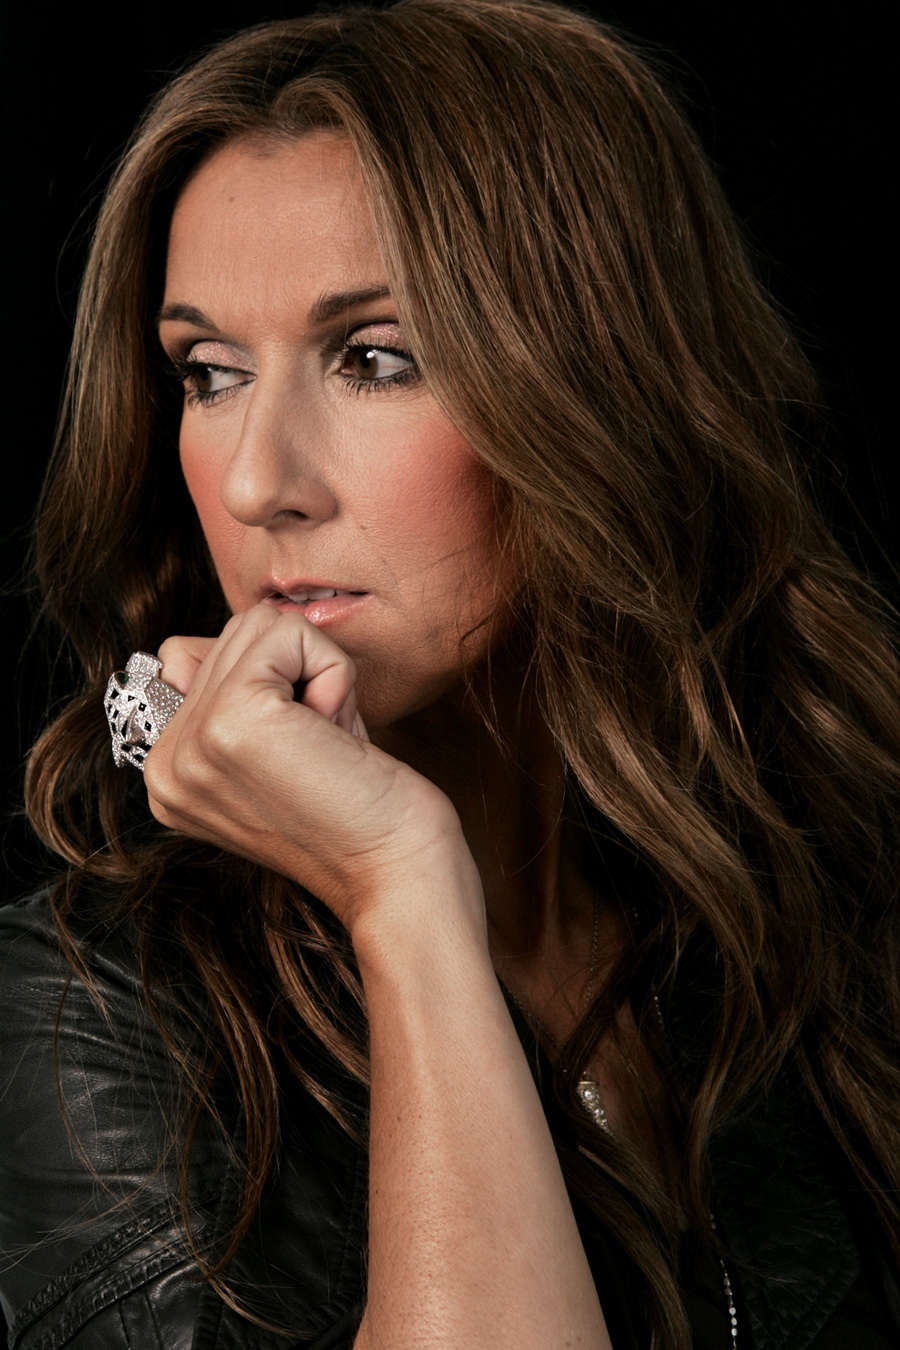 Celine Dion Profile  Biography  Pictures  News